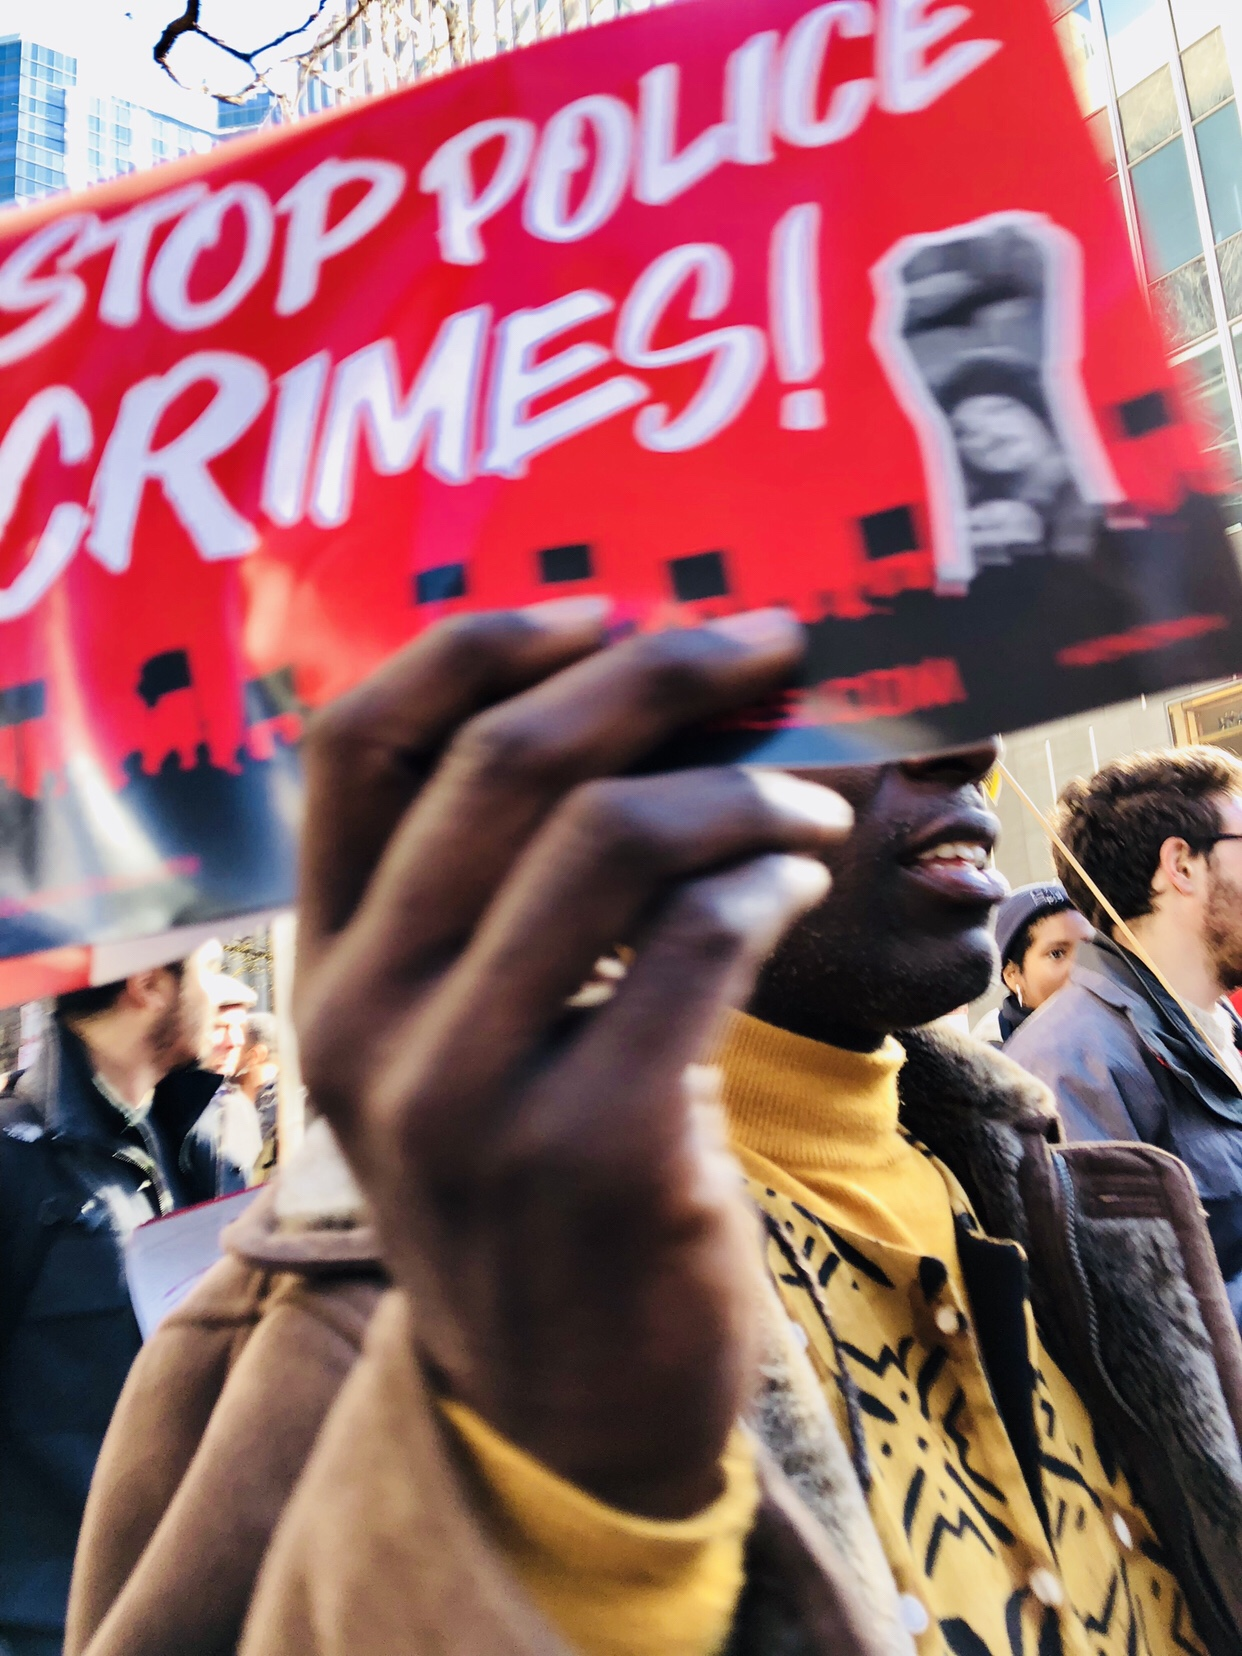 A man holds a sign protesting police crimes in Chicago, Illinois.